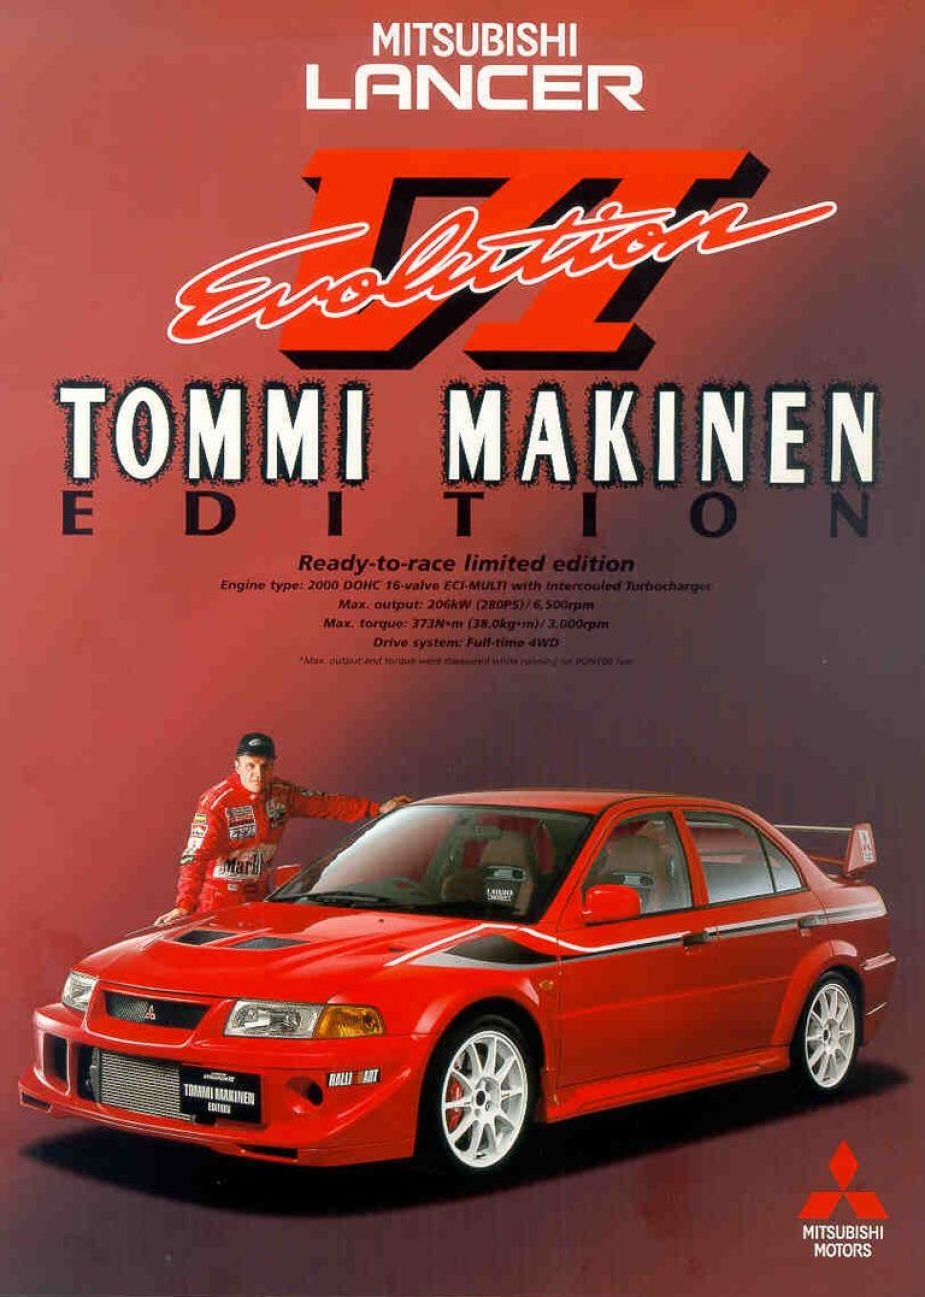 Tommi Mäkinen Evolution VI